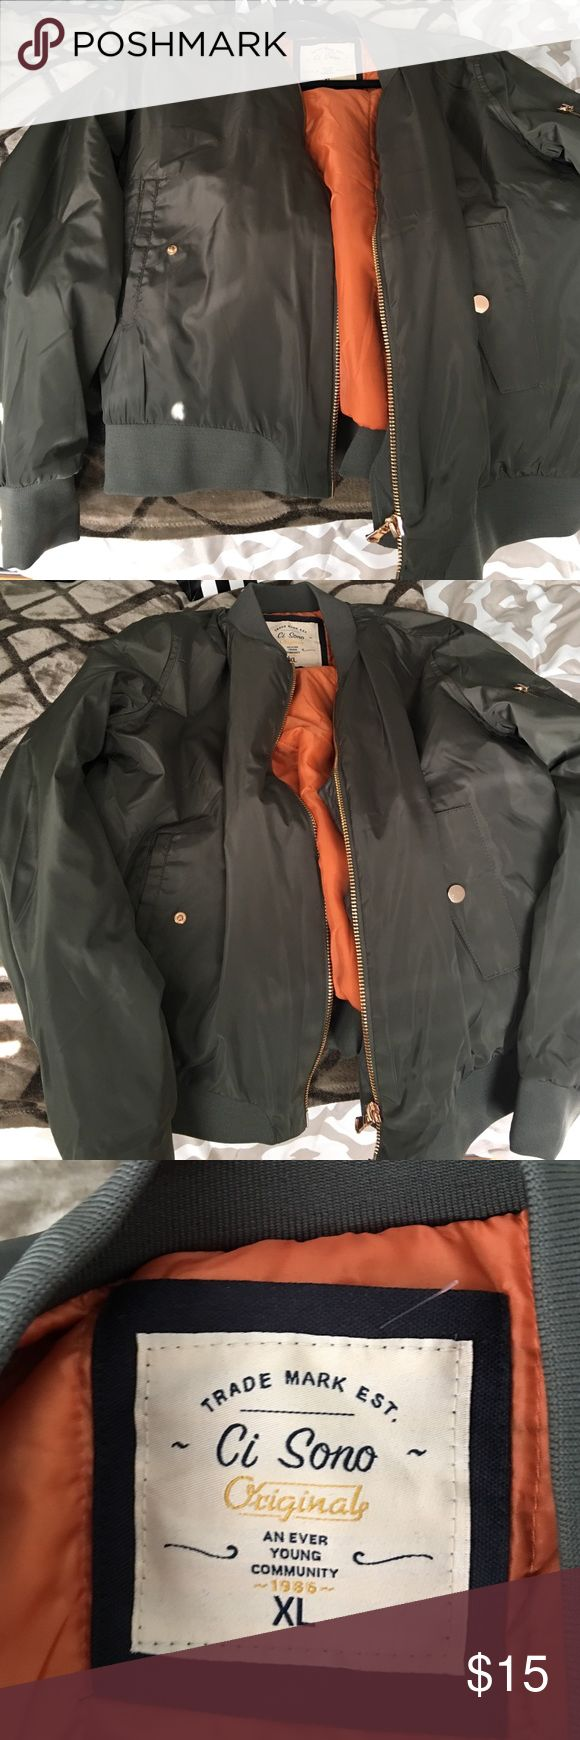 Olive green jacket Olive green jacket in a size XL Jackets & Coats